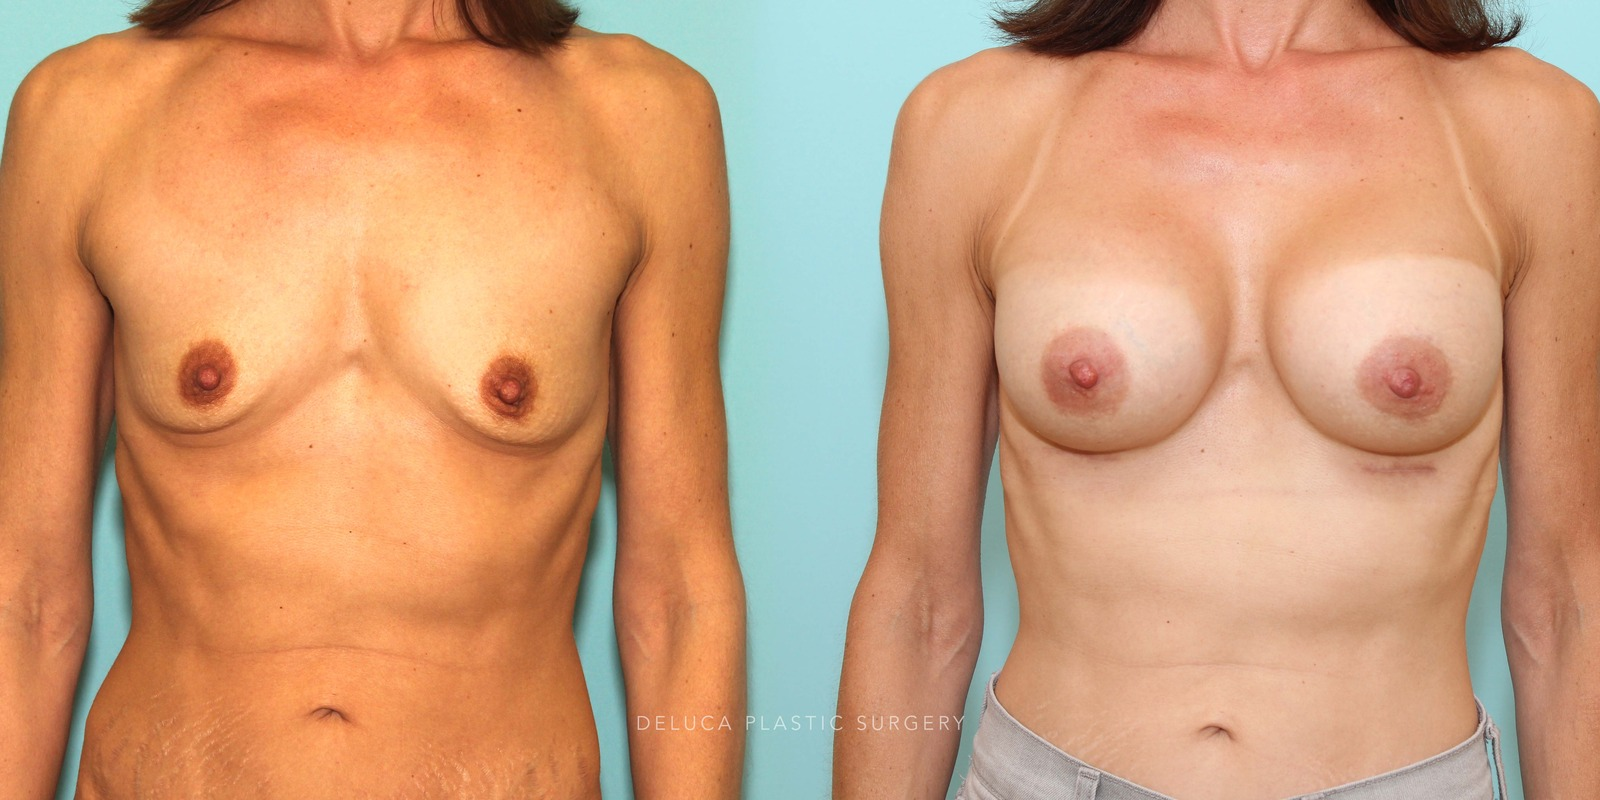 44 year old Dual Plane Asymmetric Breast Augmentation with 375ml High Profile Silicone Implants